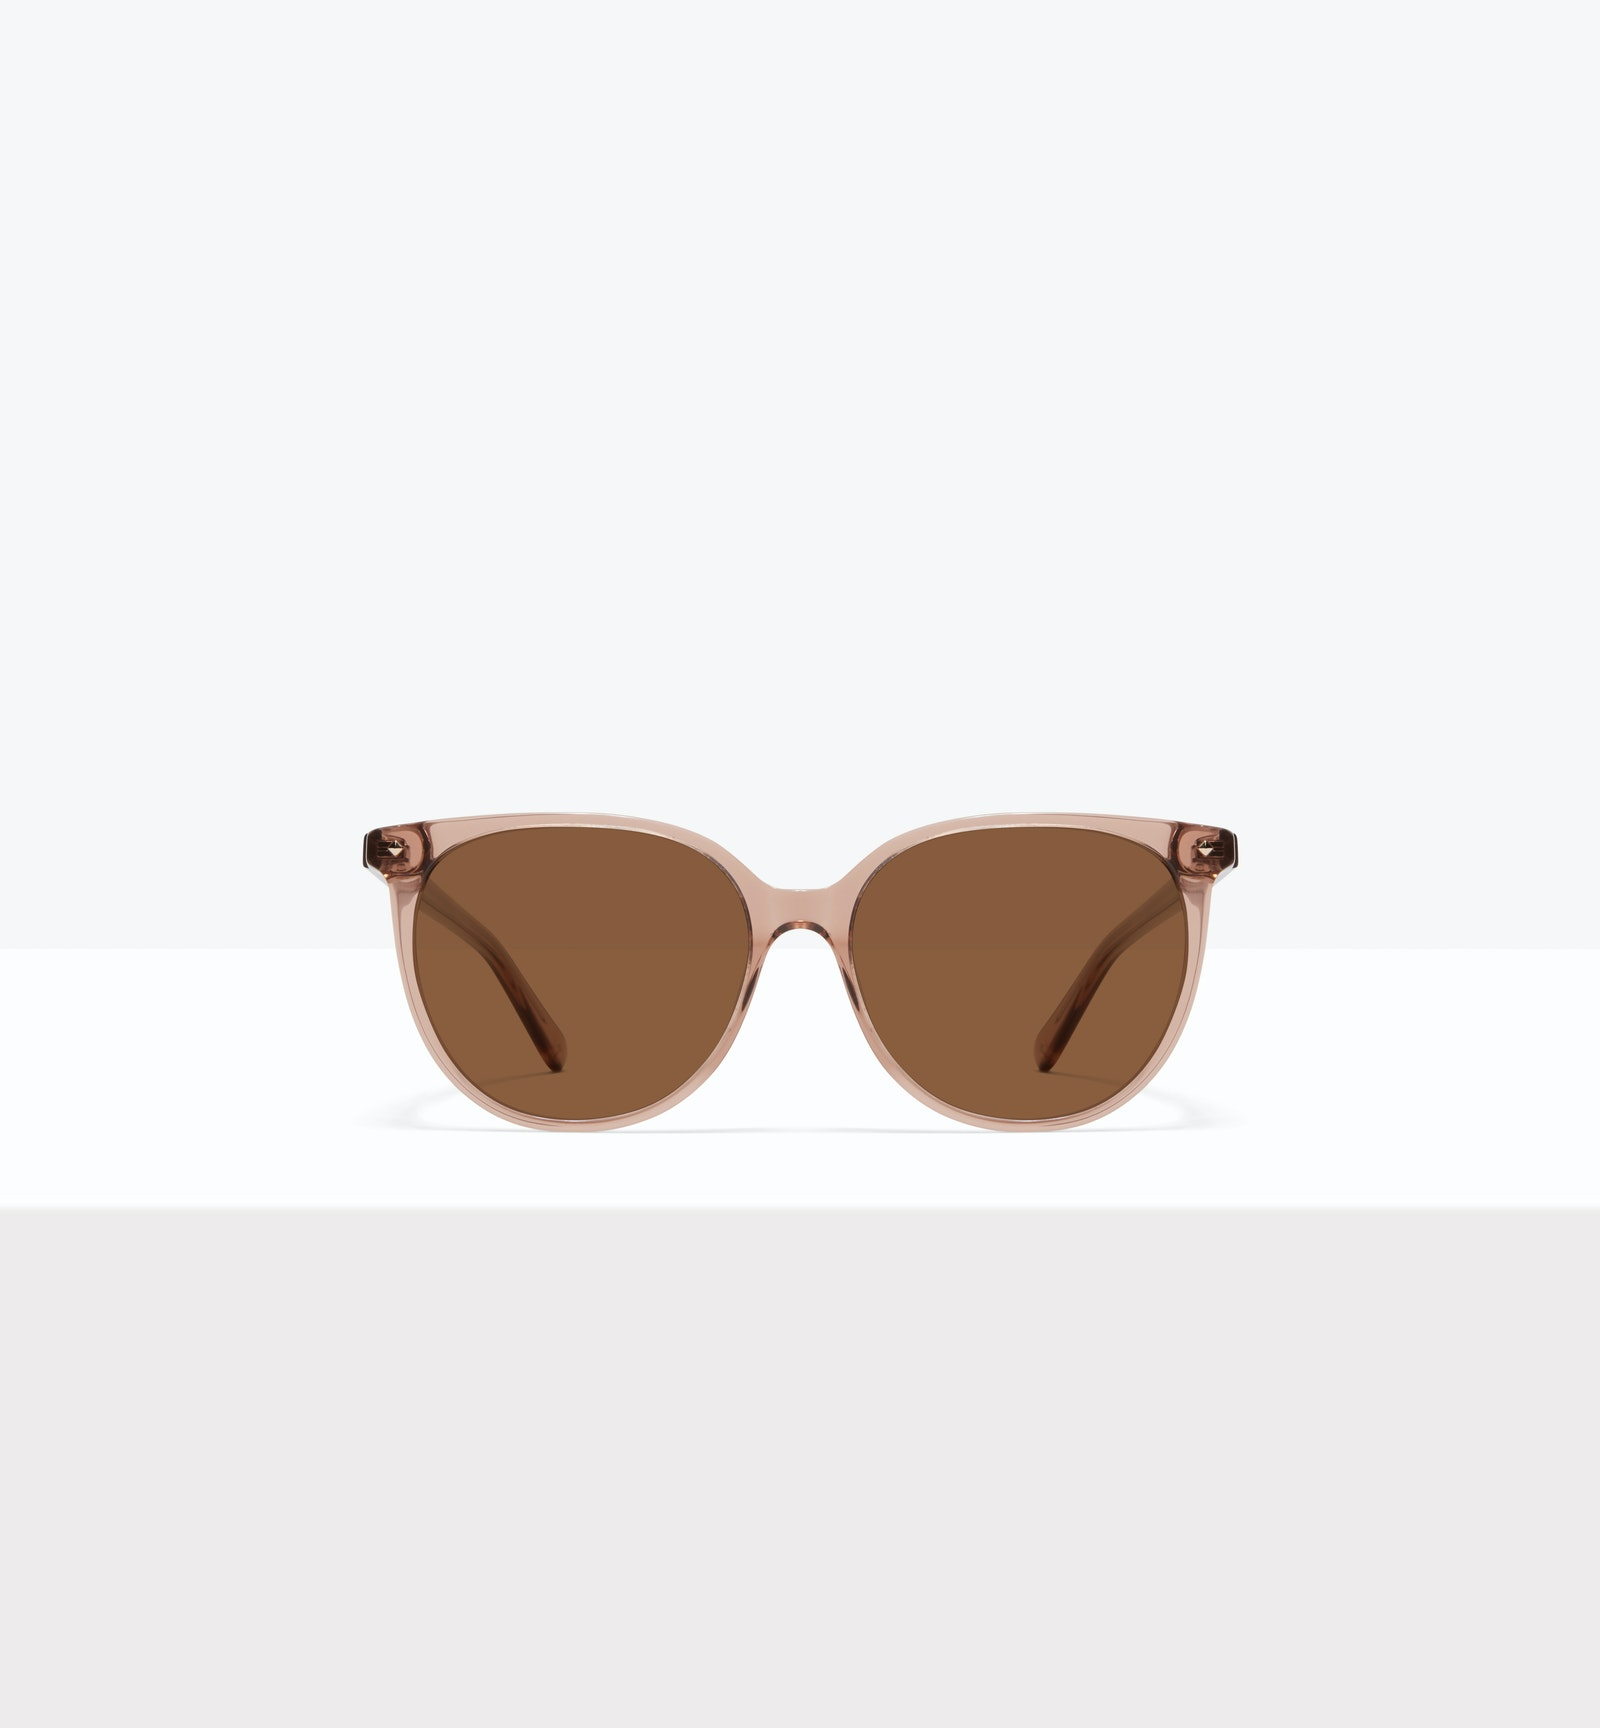 Affordable Fashion Glasses Round Sunglasses Women Area S Rose